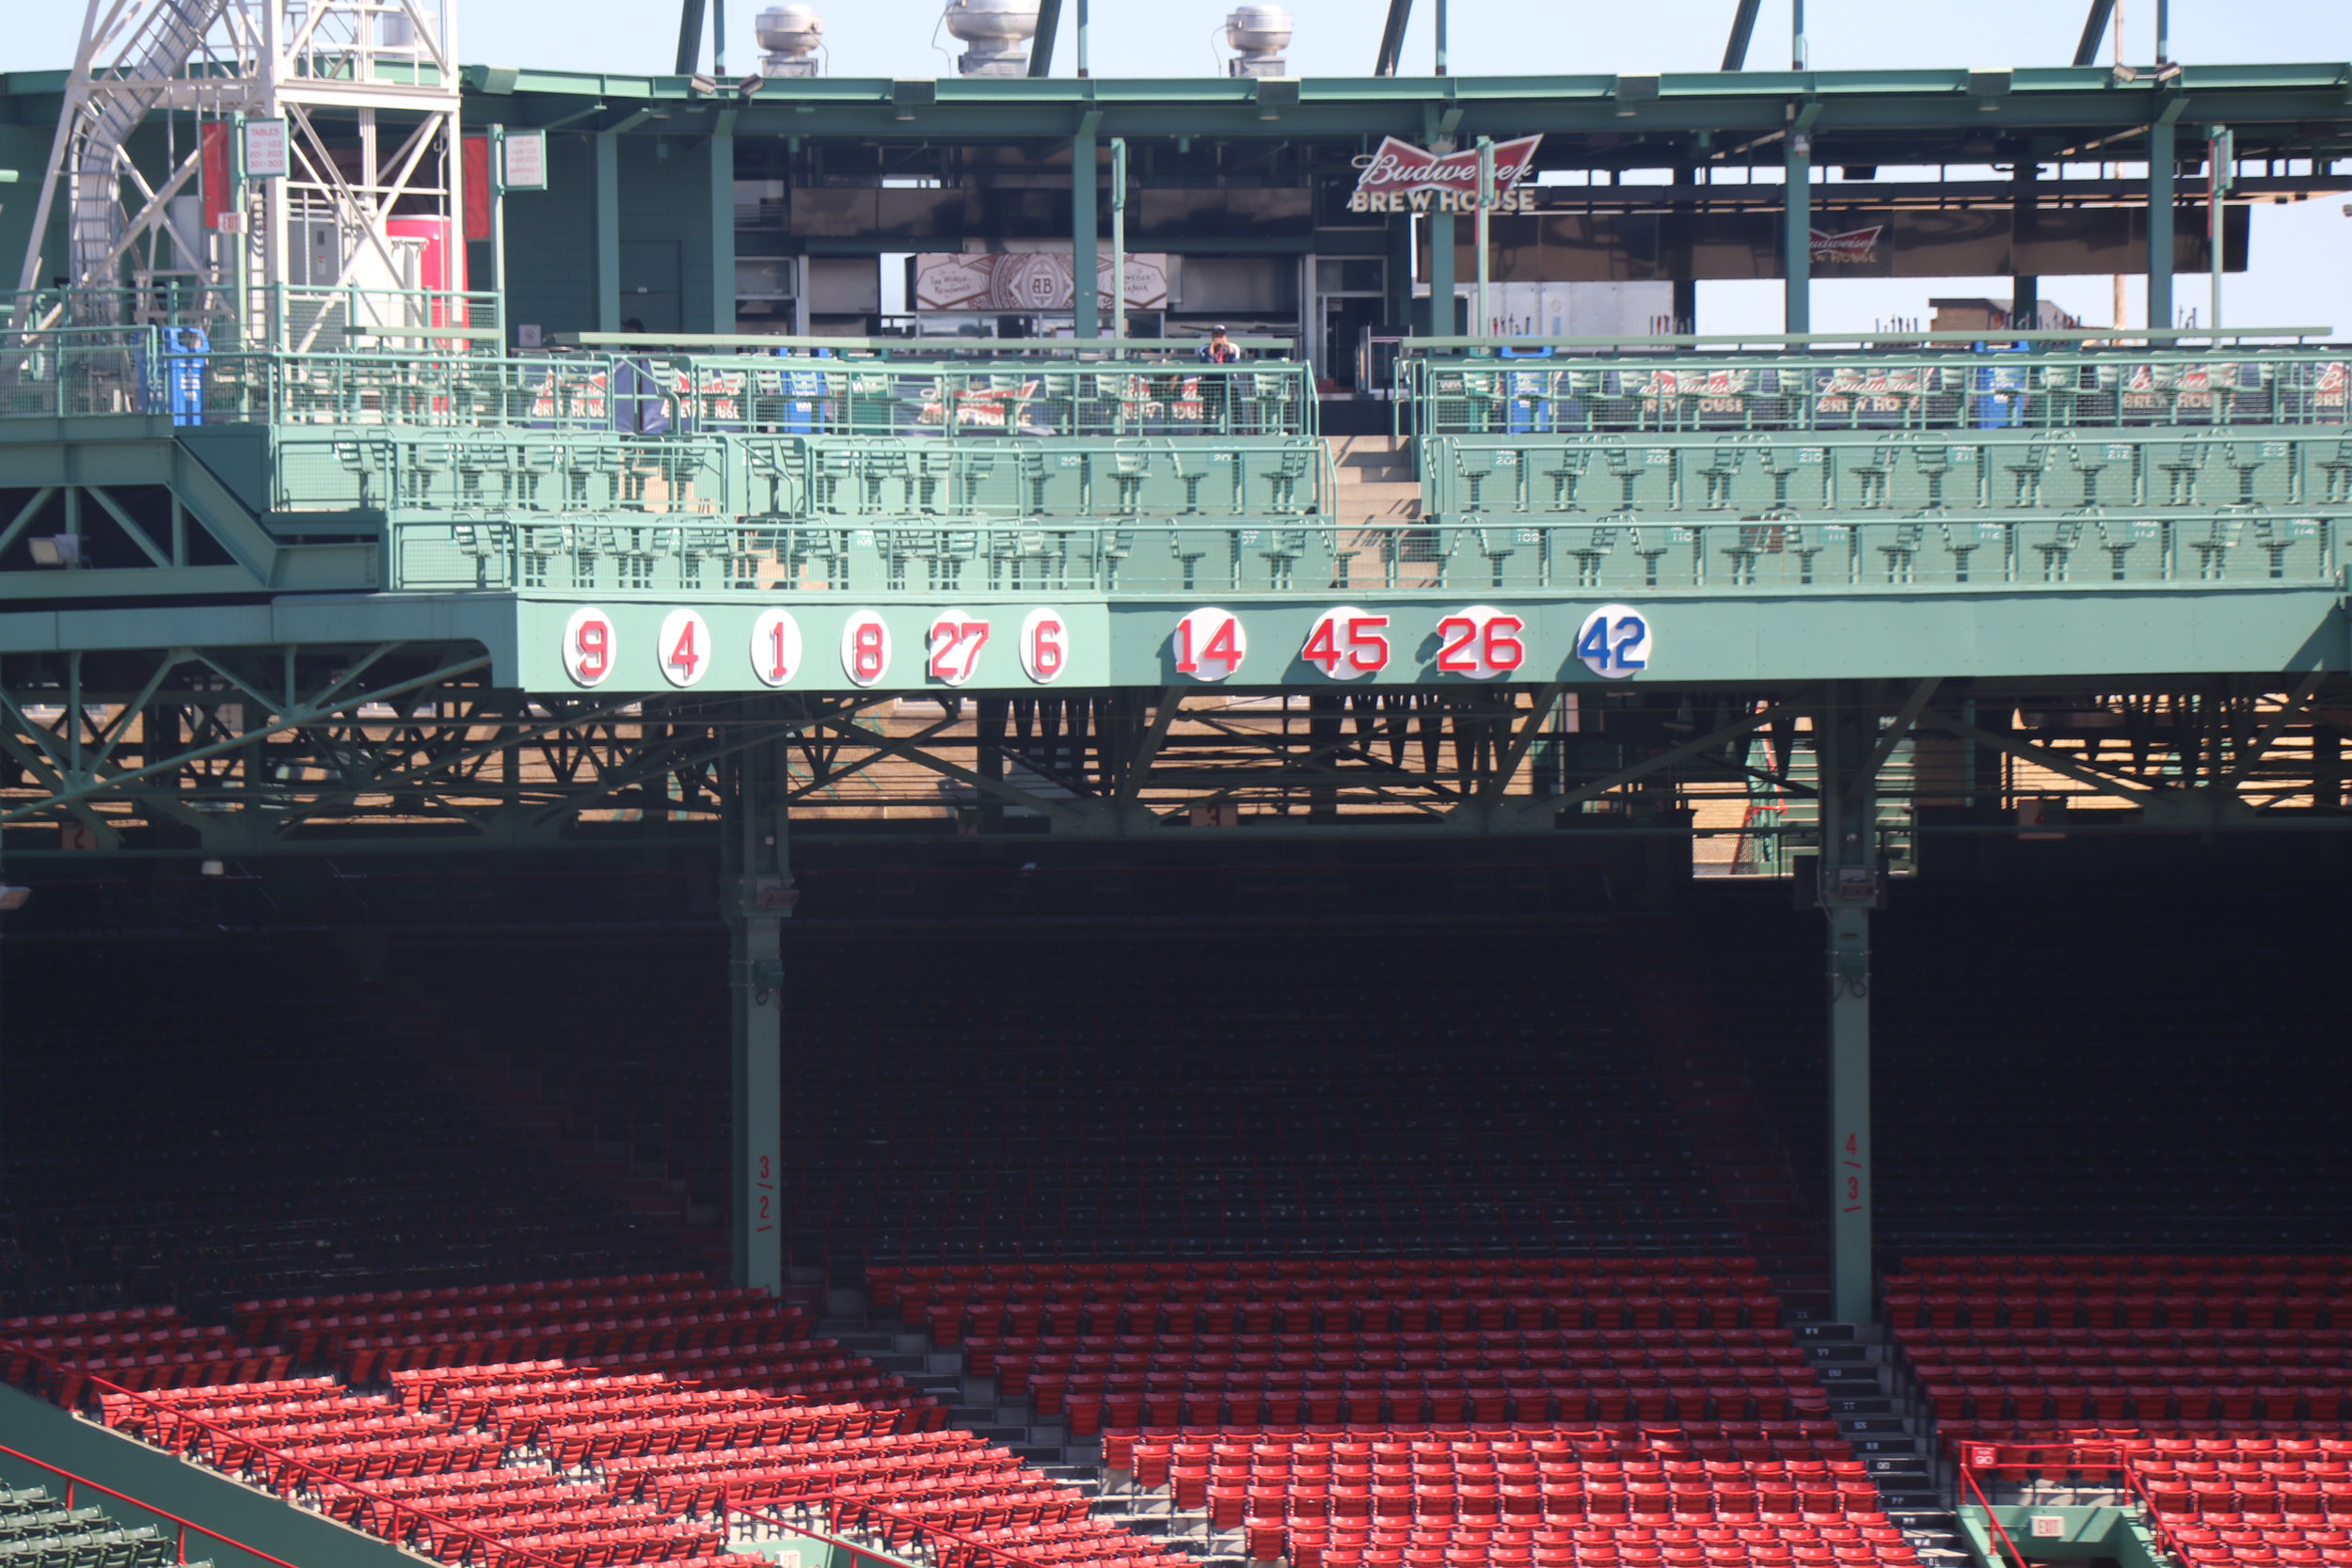 All retired numbers in the Red Sox history - number 42 is retired all over the league for Jackie Robinson